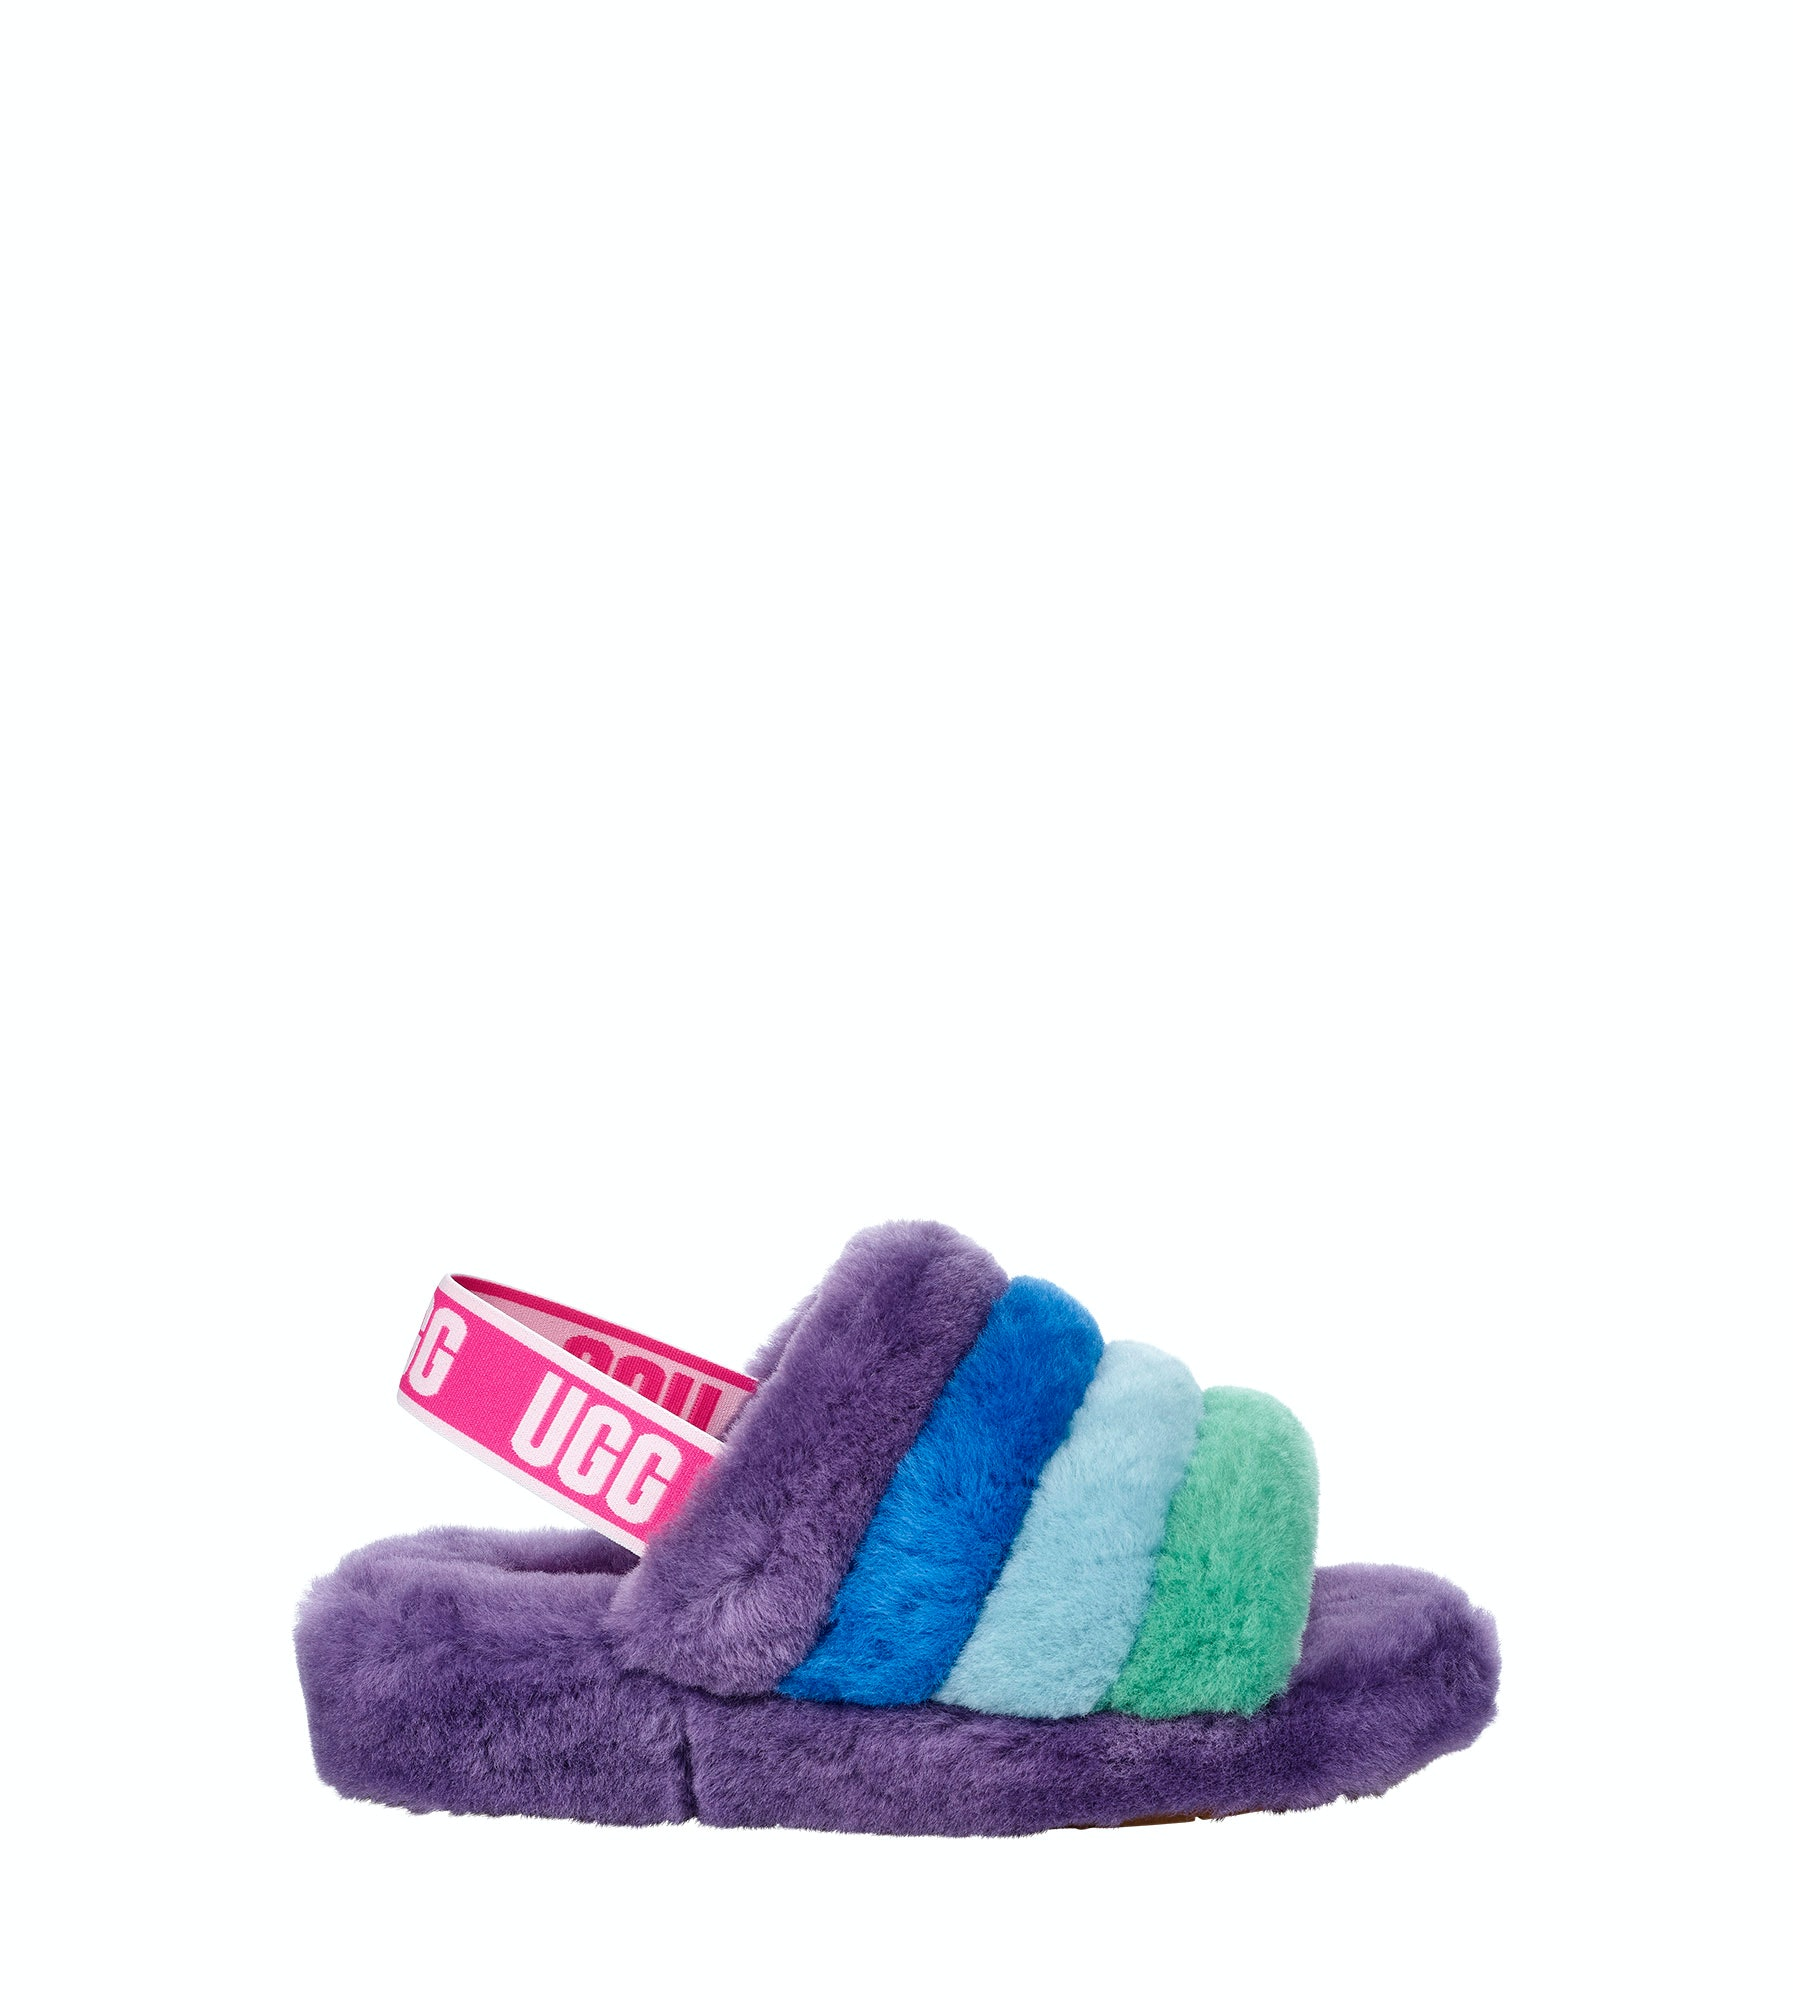 944d9df8f Buying UGG's Pride Collection Will Help Give Back To The LGBTQ+ Community